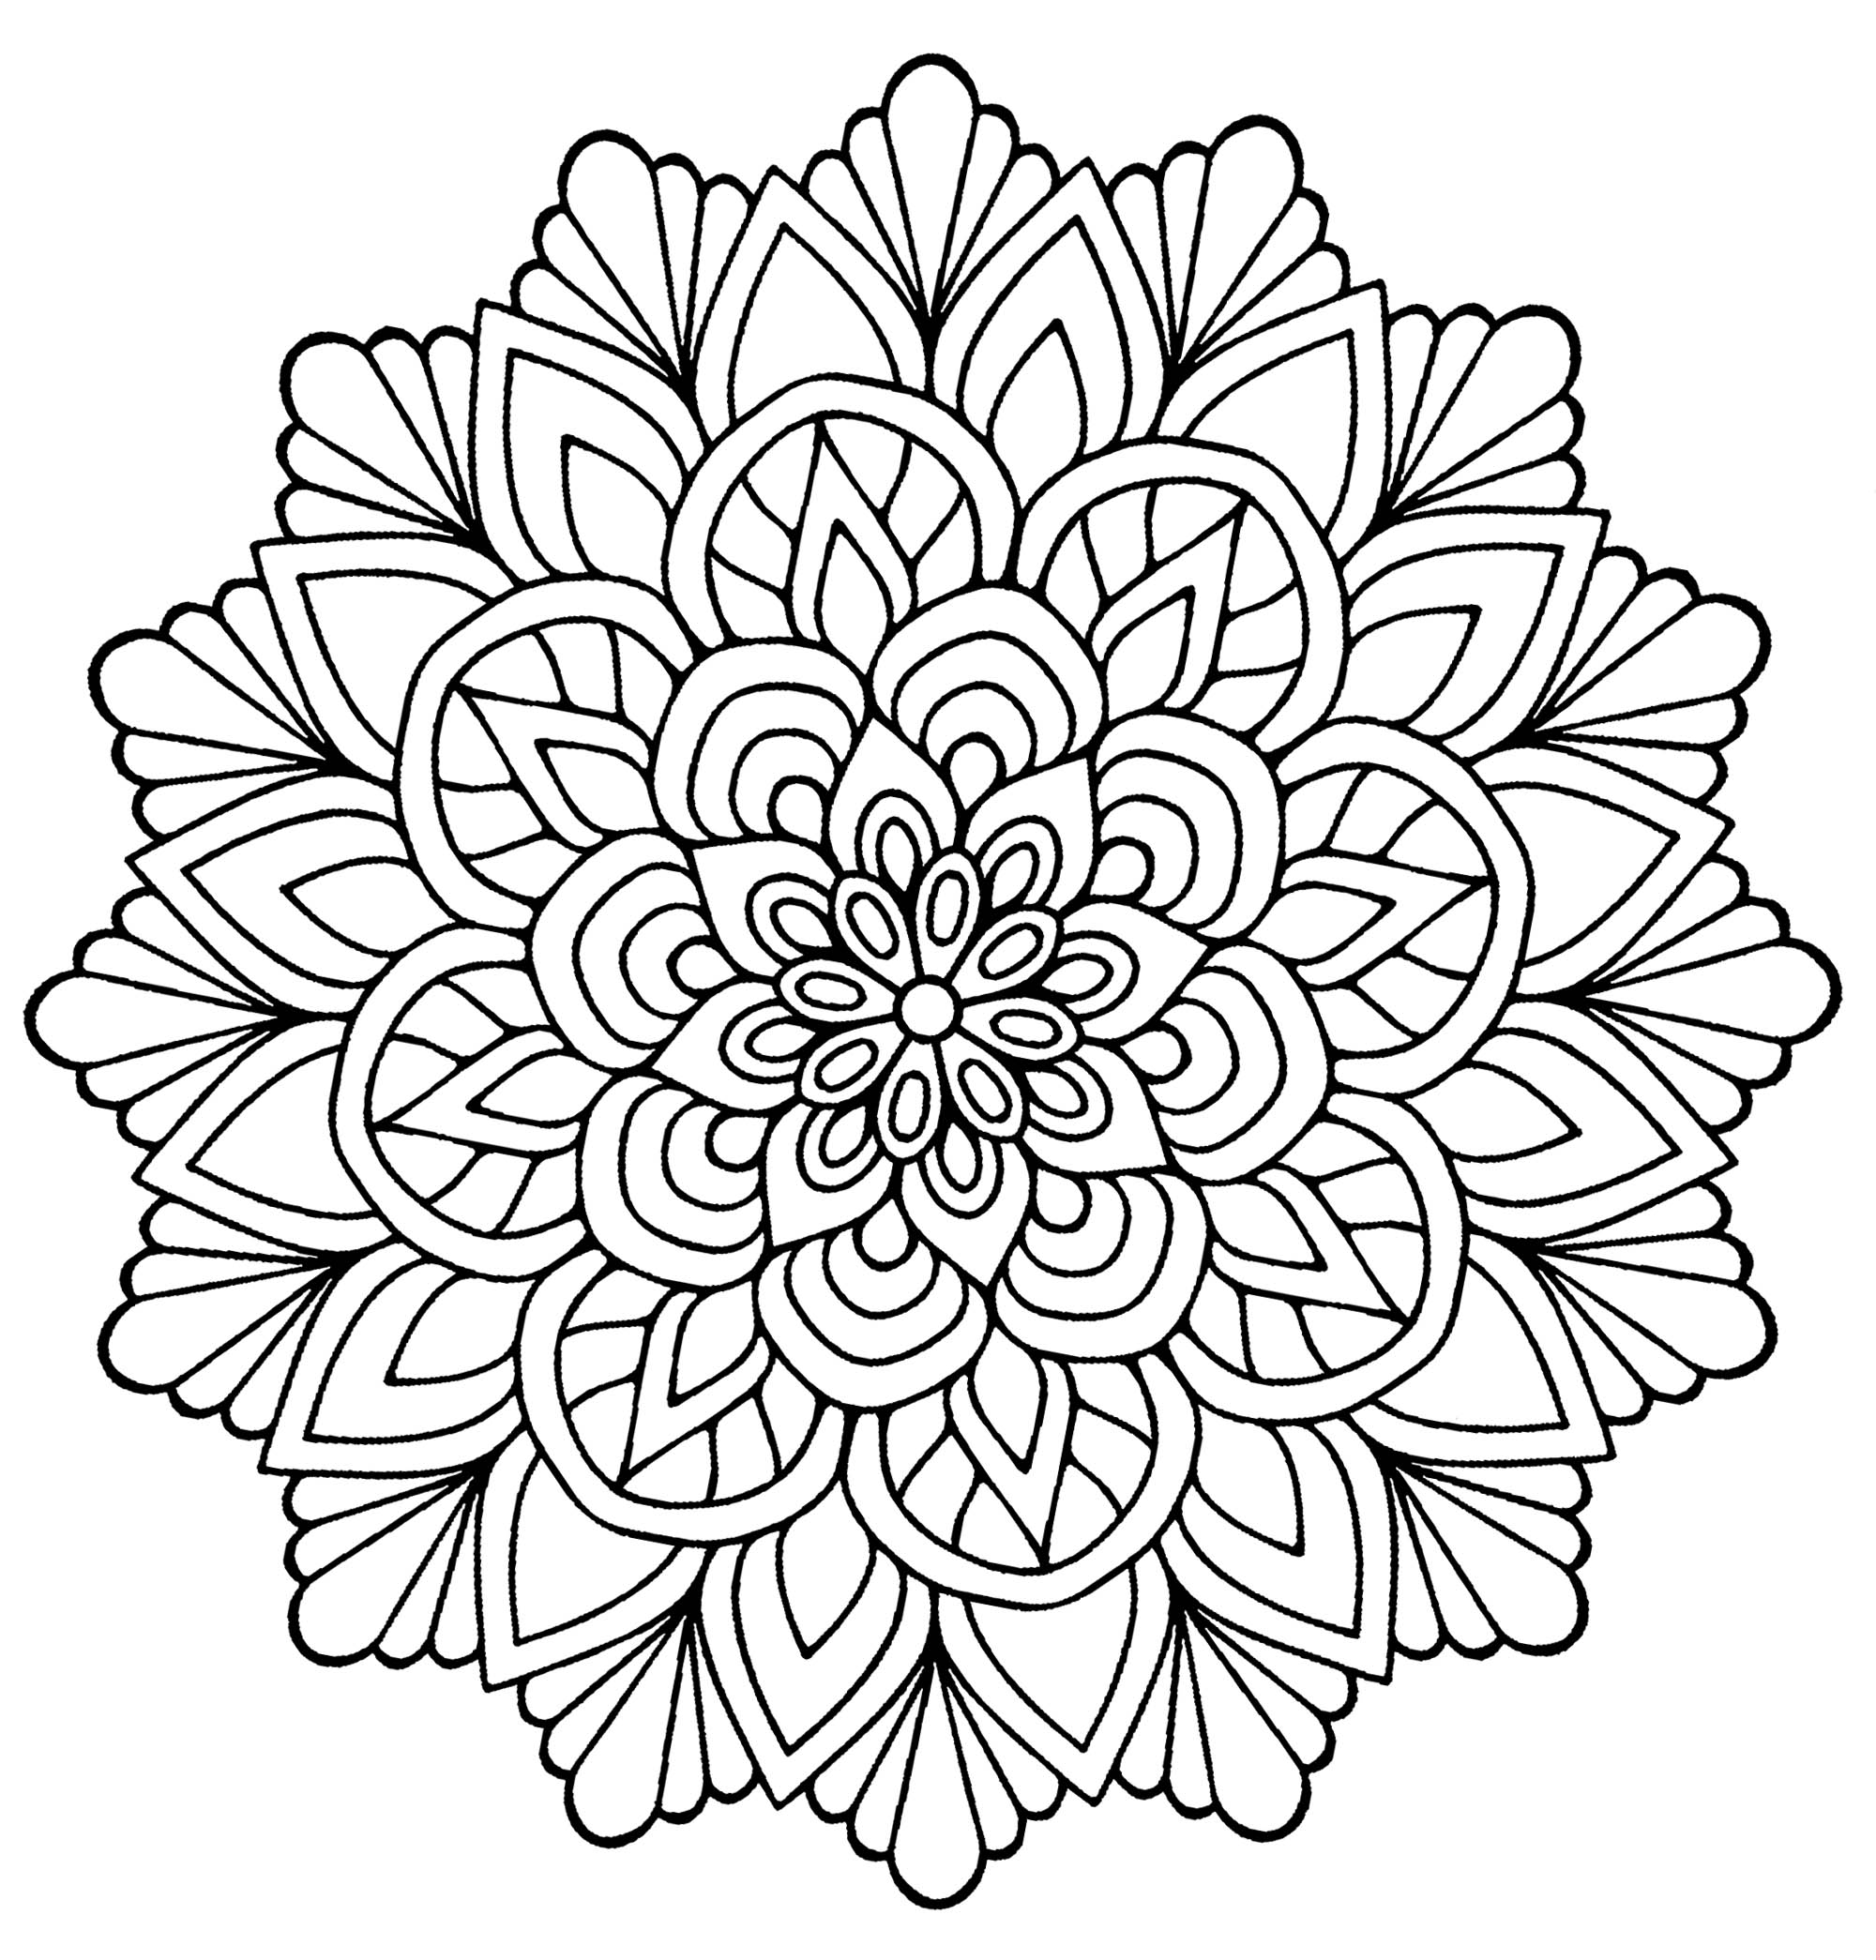 mandala colouring pages for kids free printable mandalas for kids best coloring pages for colouring mandala kids for pages